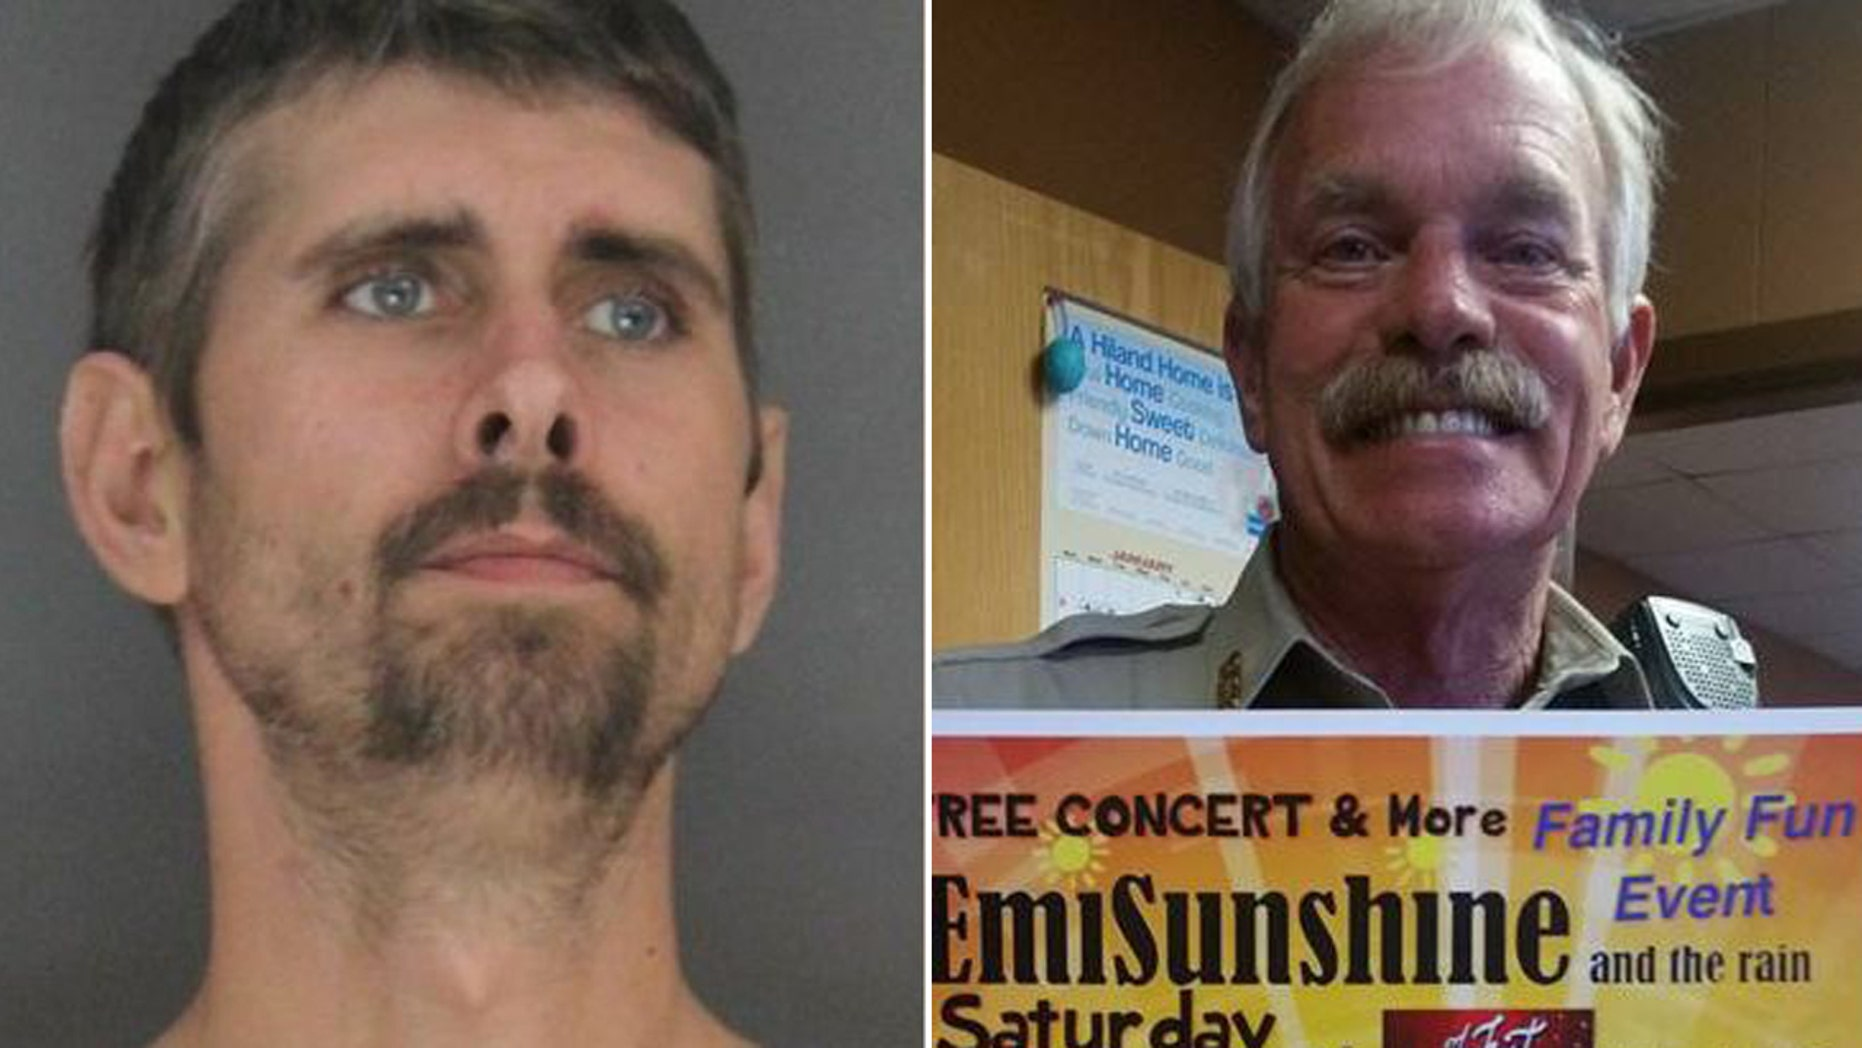 Billy Jones, left, is suspected of fatally shooting Sebastian County Sheriff's Deputy Bill Cooper, right, and Hackett Chief of Police Darrell Spells